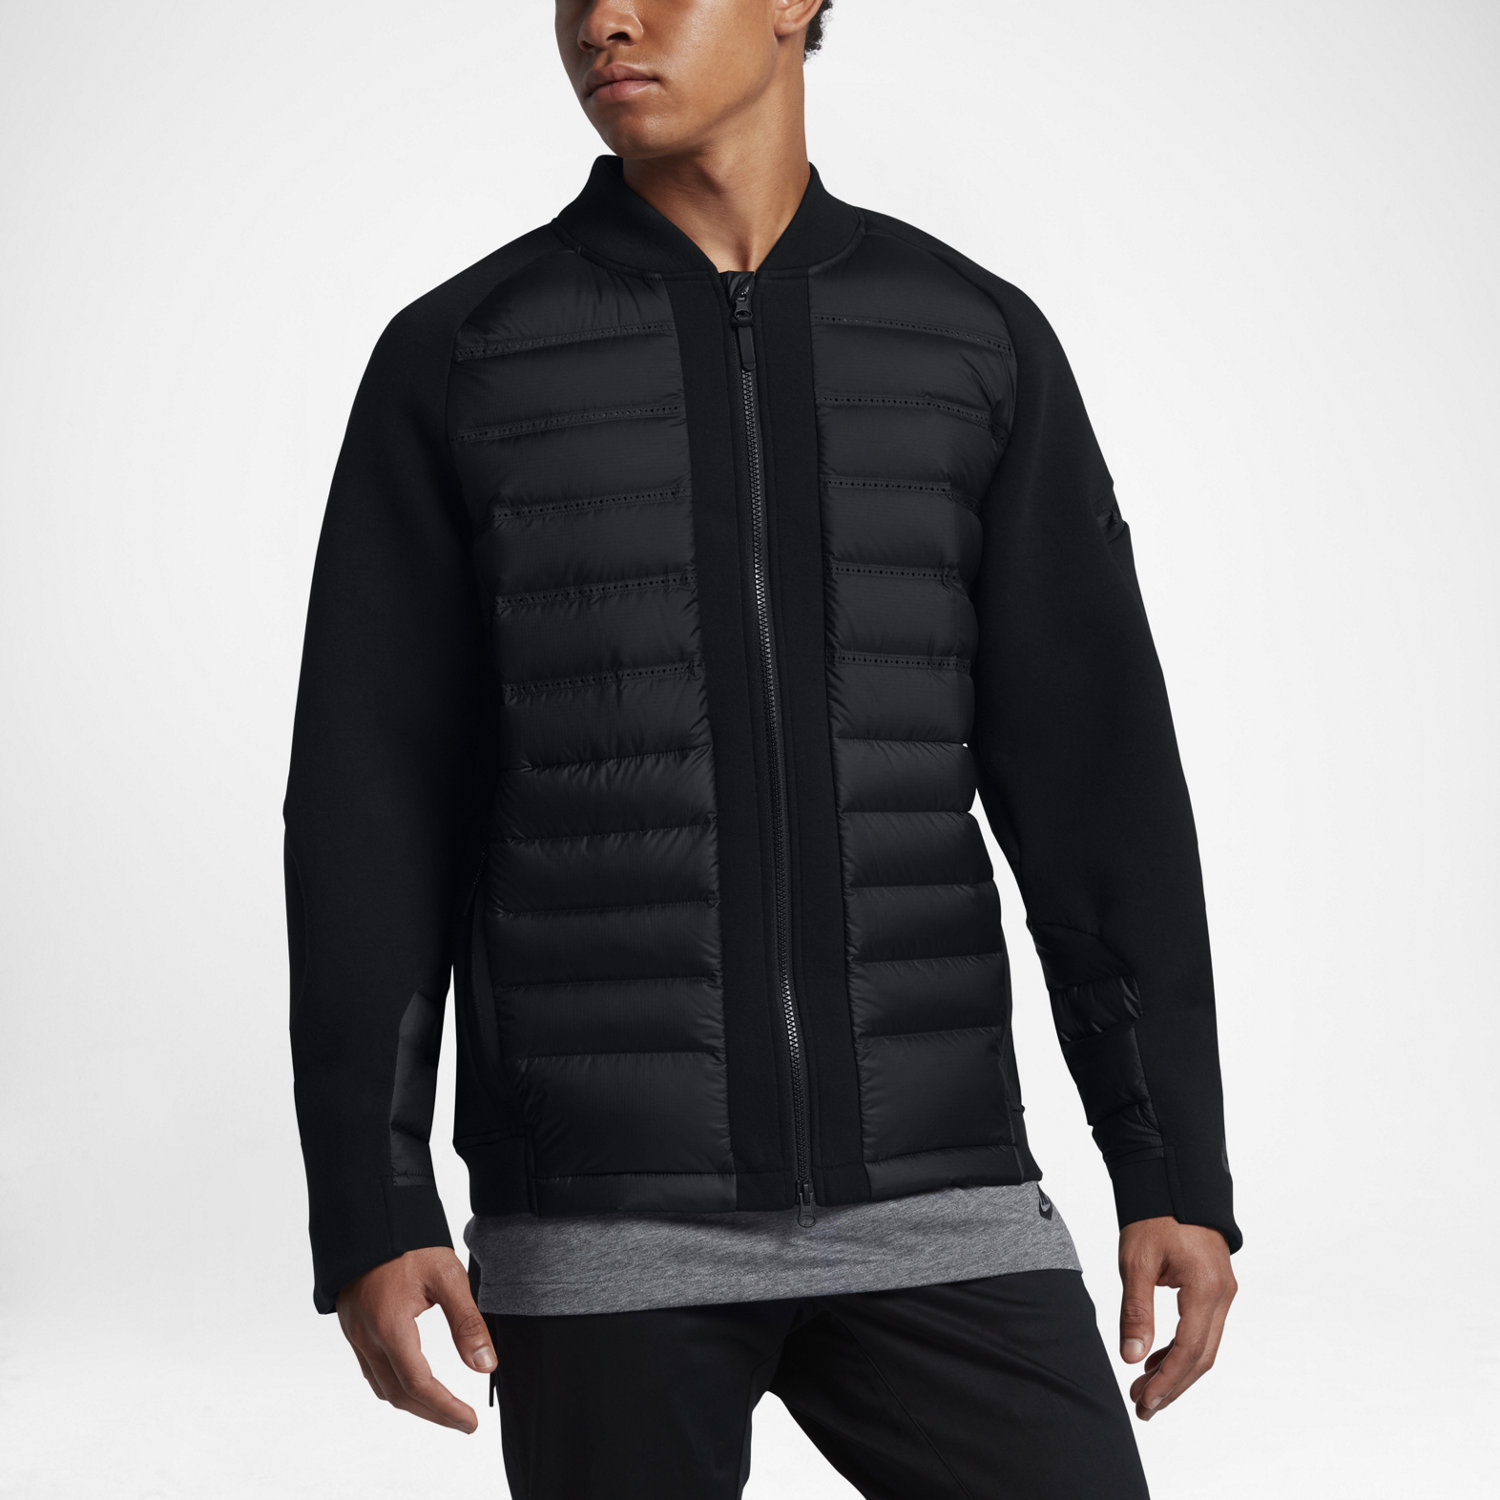 09bf3bc03524 Nike Sportswear Tech Fleece AeroLoft Men s Down Bomber. Nike.com